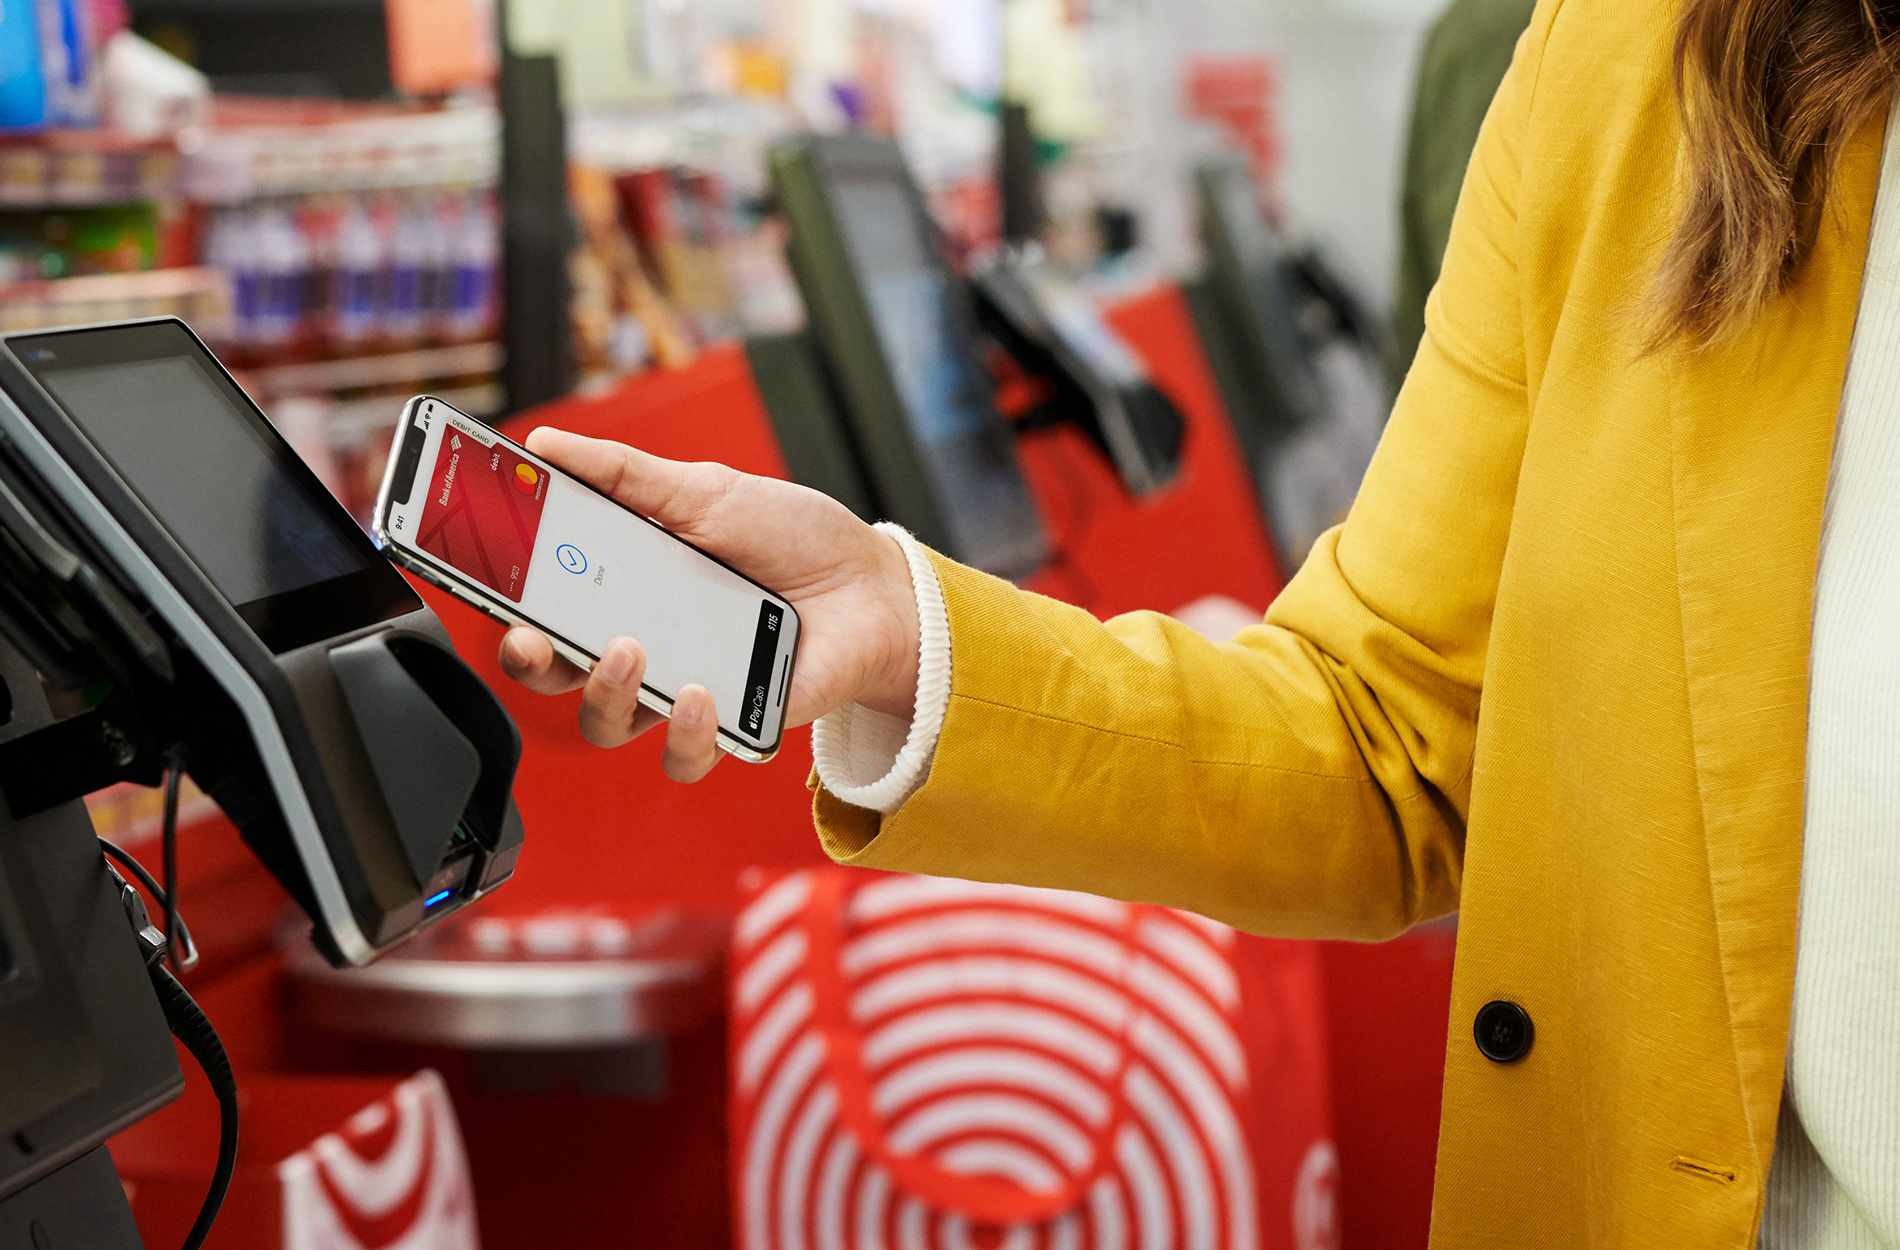 Shopper using Apple Pay at Target